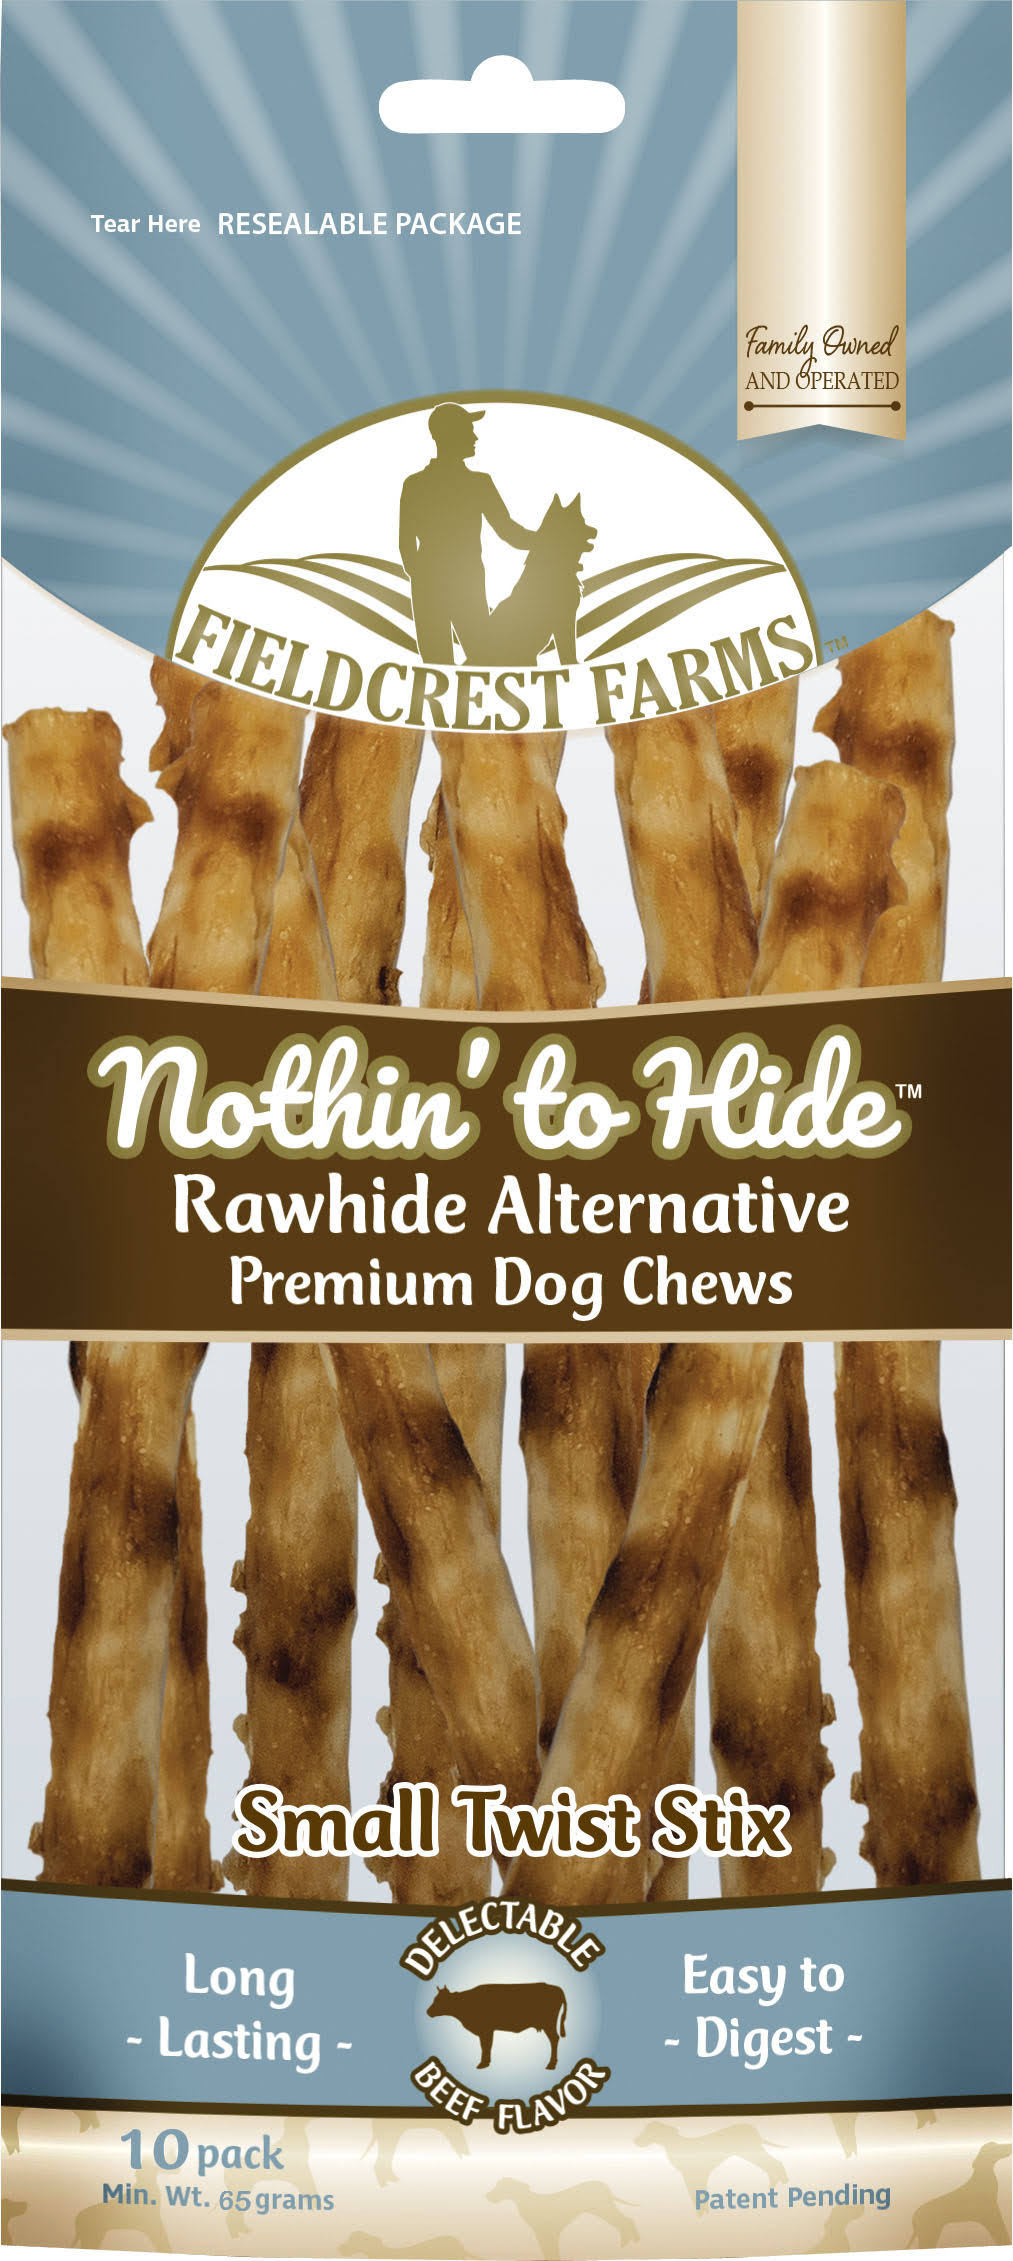 Fieldcrest Farms Nothin' To Hide Rawhide Alternative Small Twist Stix - 10 Pack, 65g